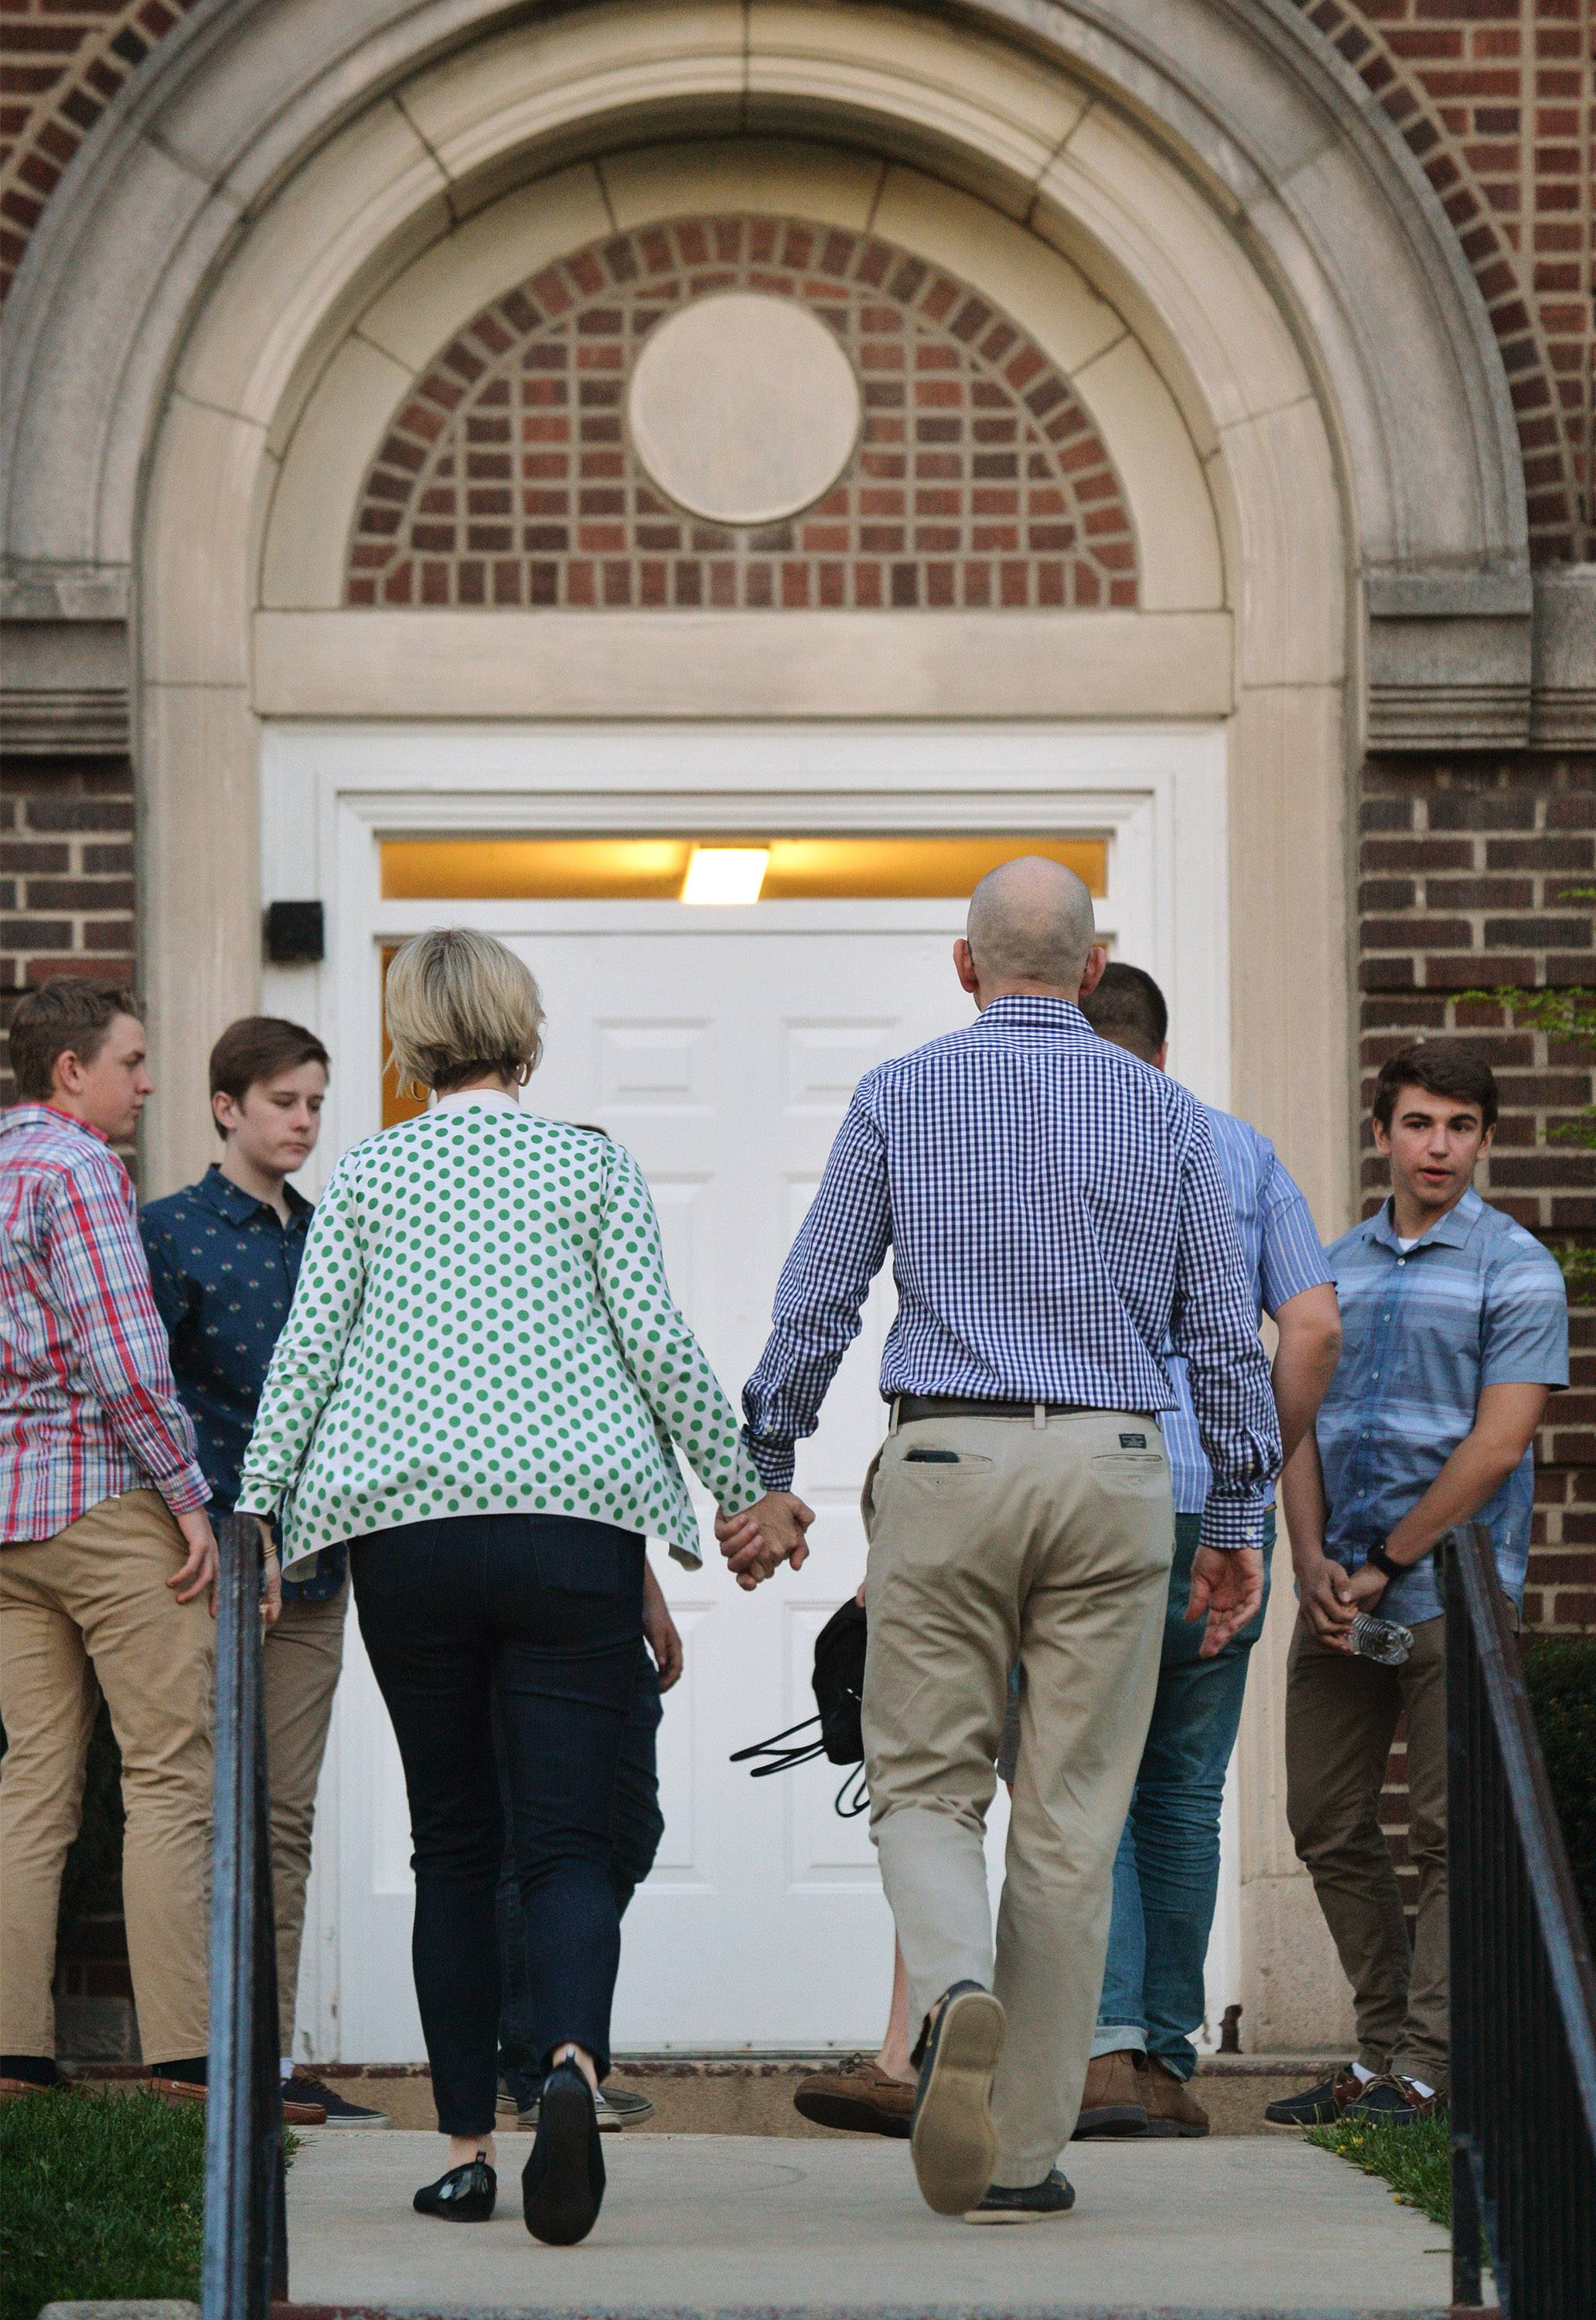 Worshippers enter Pierce Memorial Chapel Sunday for a service for the Wheaton College community after freshman Ethan Roser, 19, died.